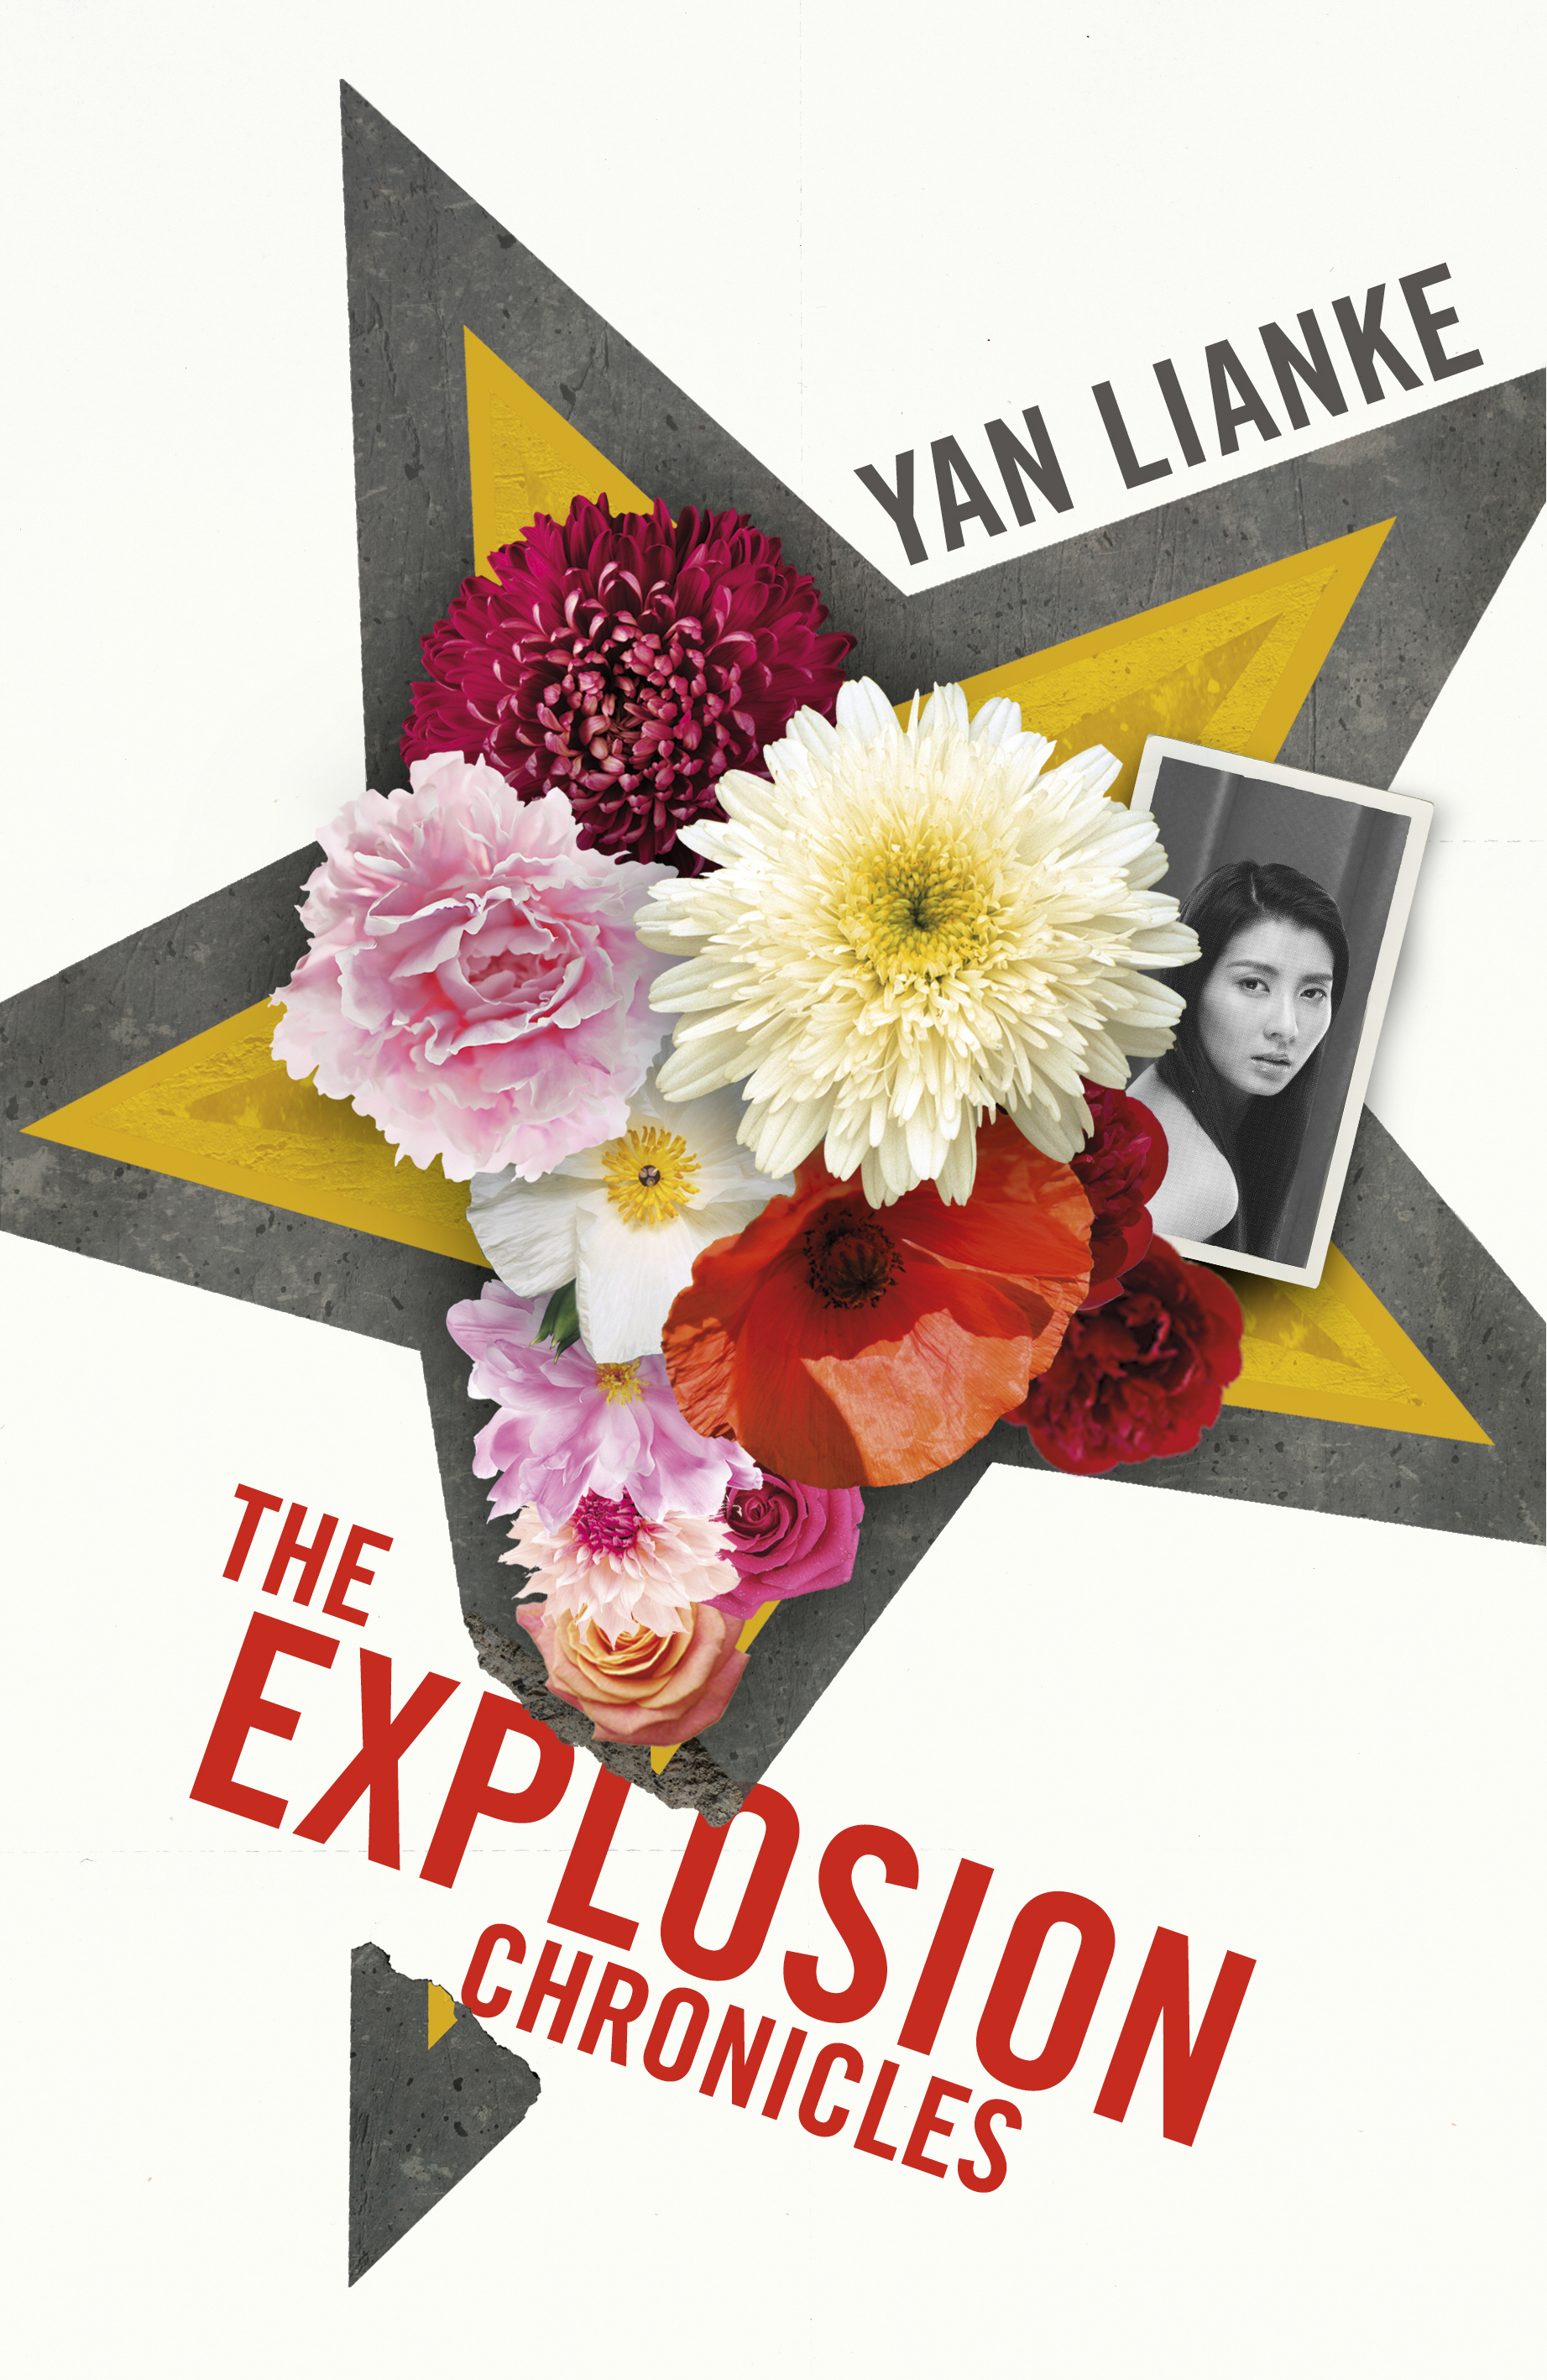 17.yan lianke the explosion chronicles